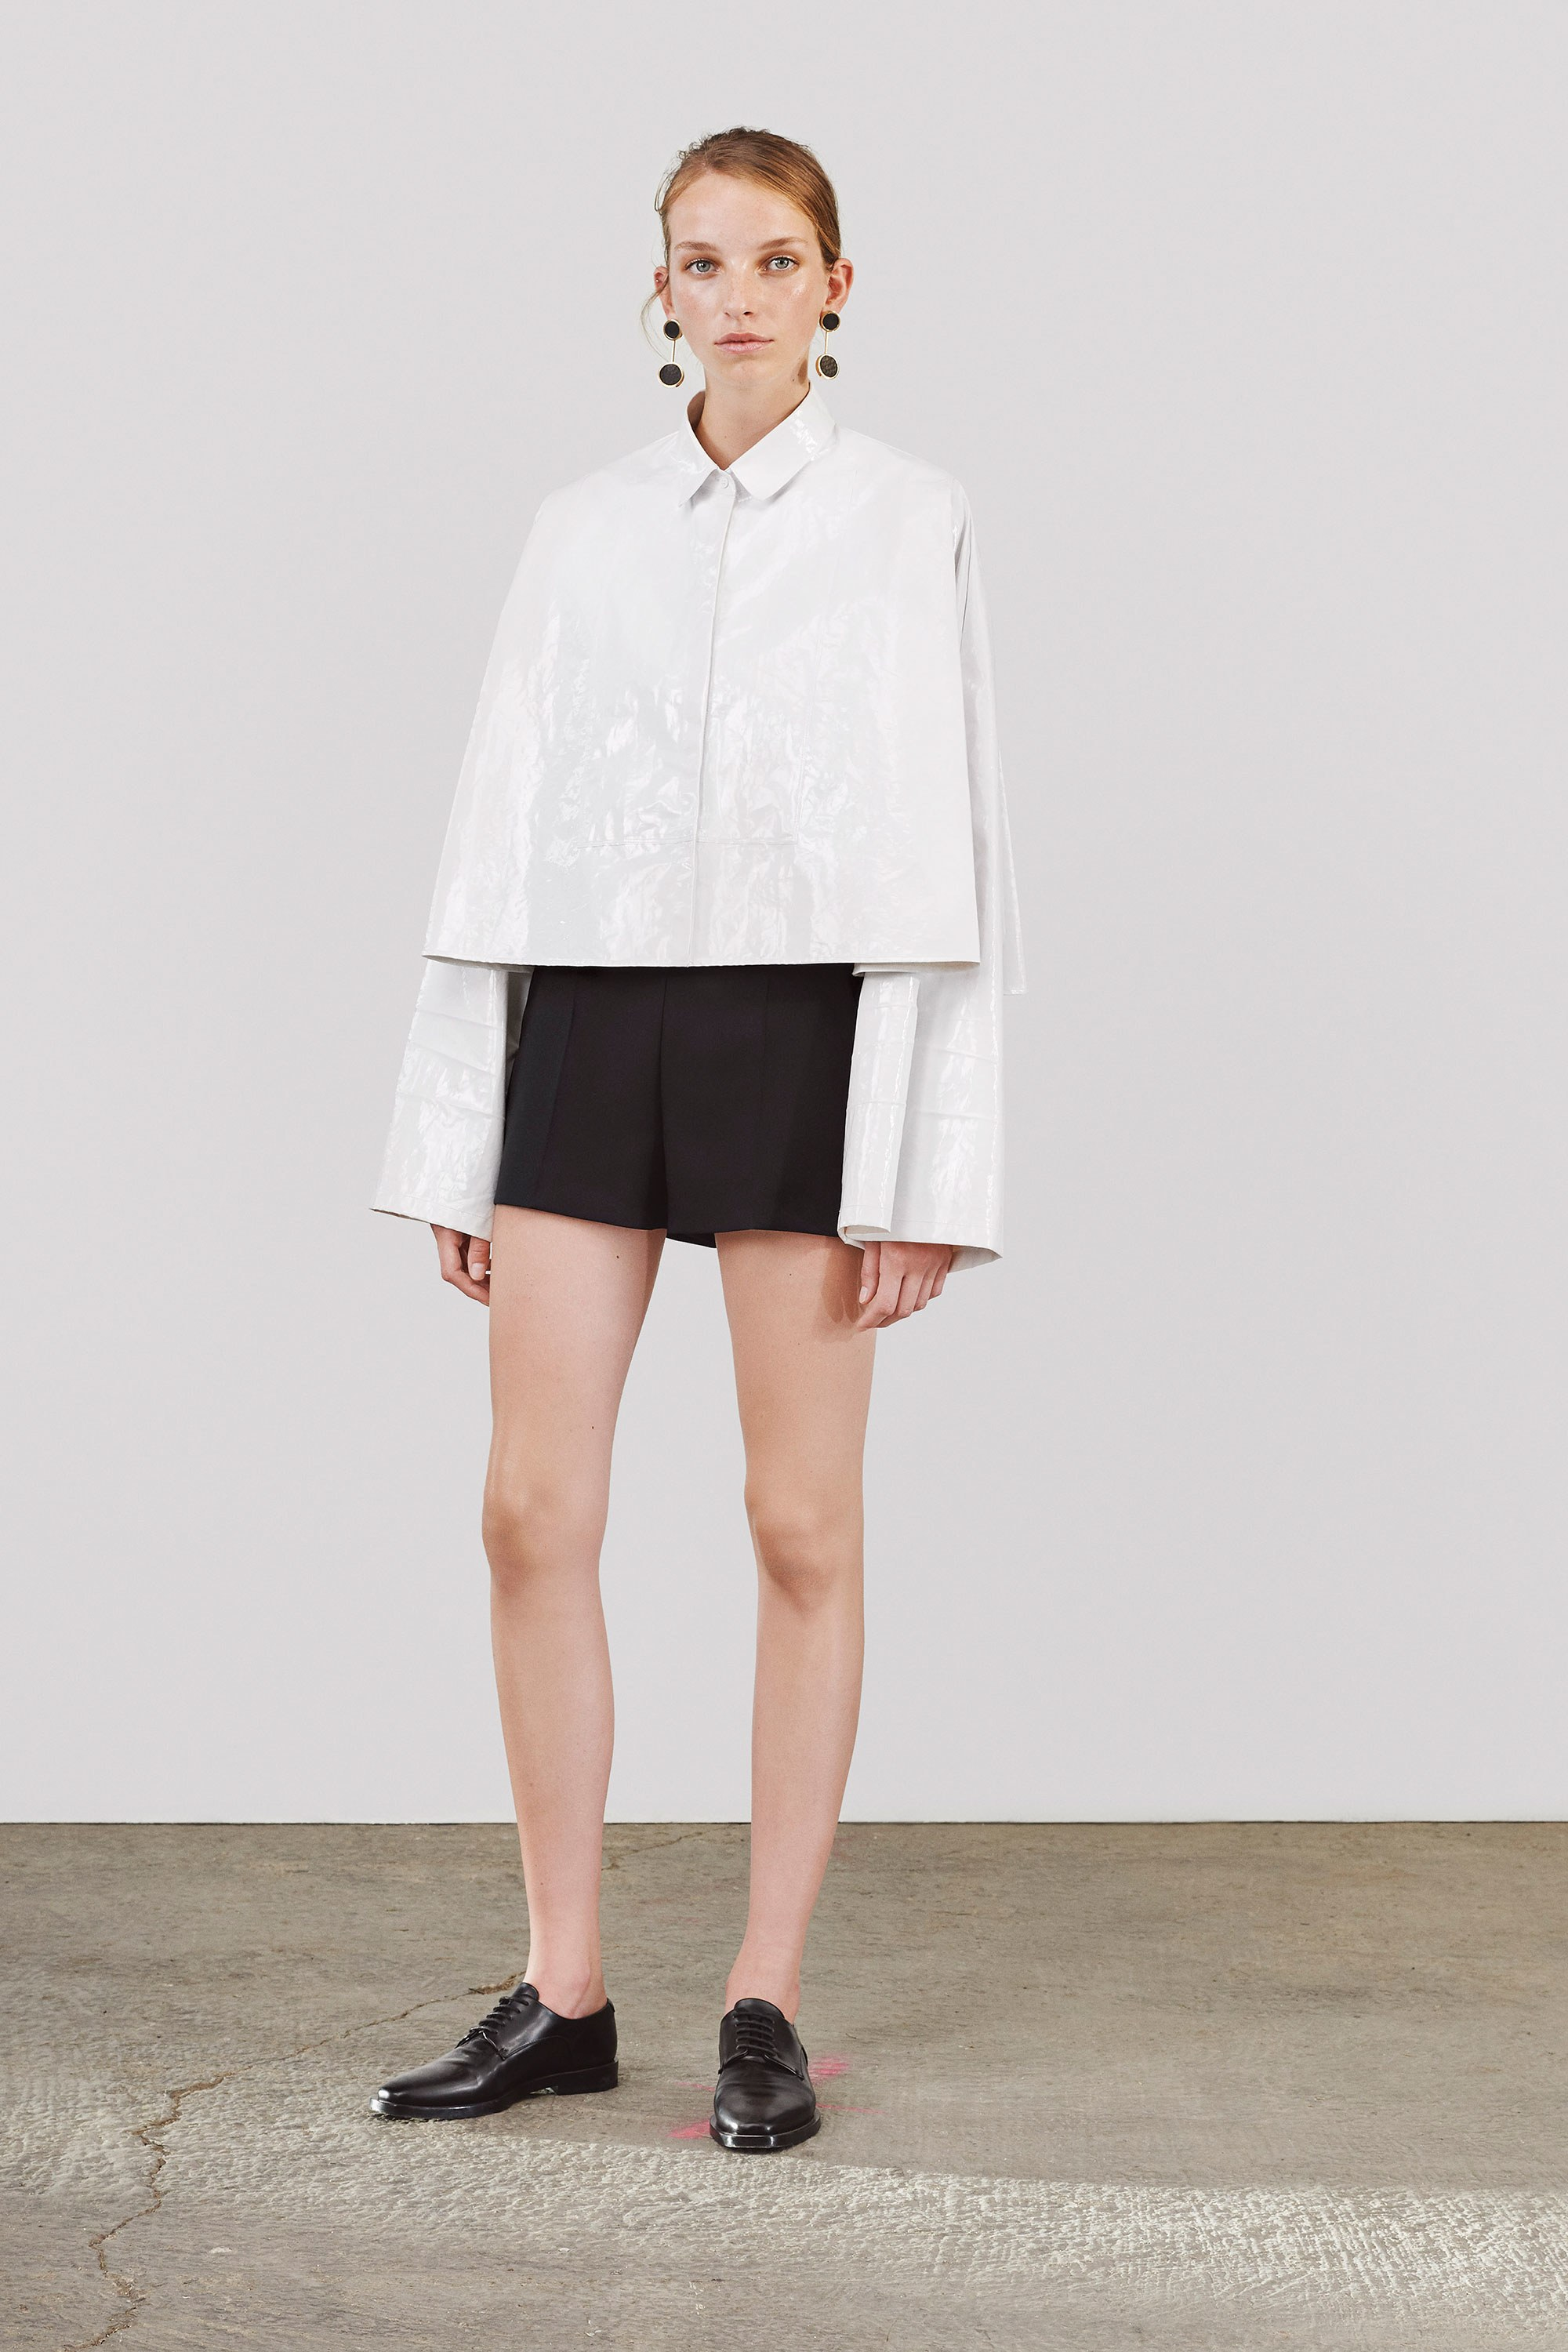 Jil Sander Collection white shirt black shorts summer outfit